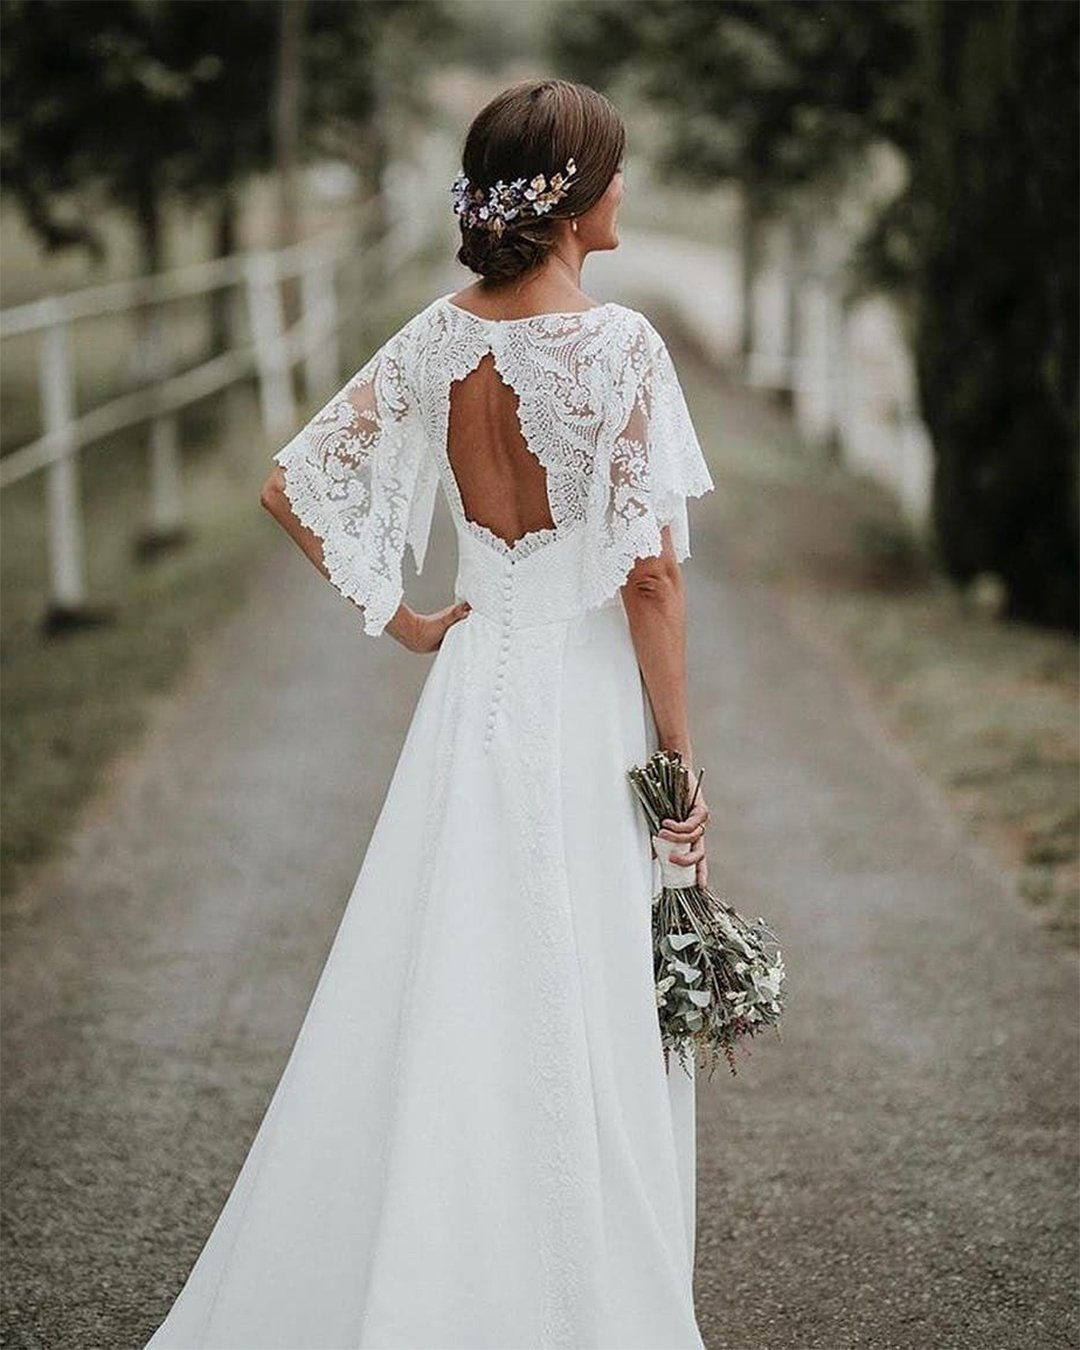 vintage inspired wedding dresses open back lace bohemian elena mur